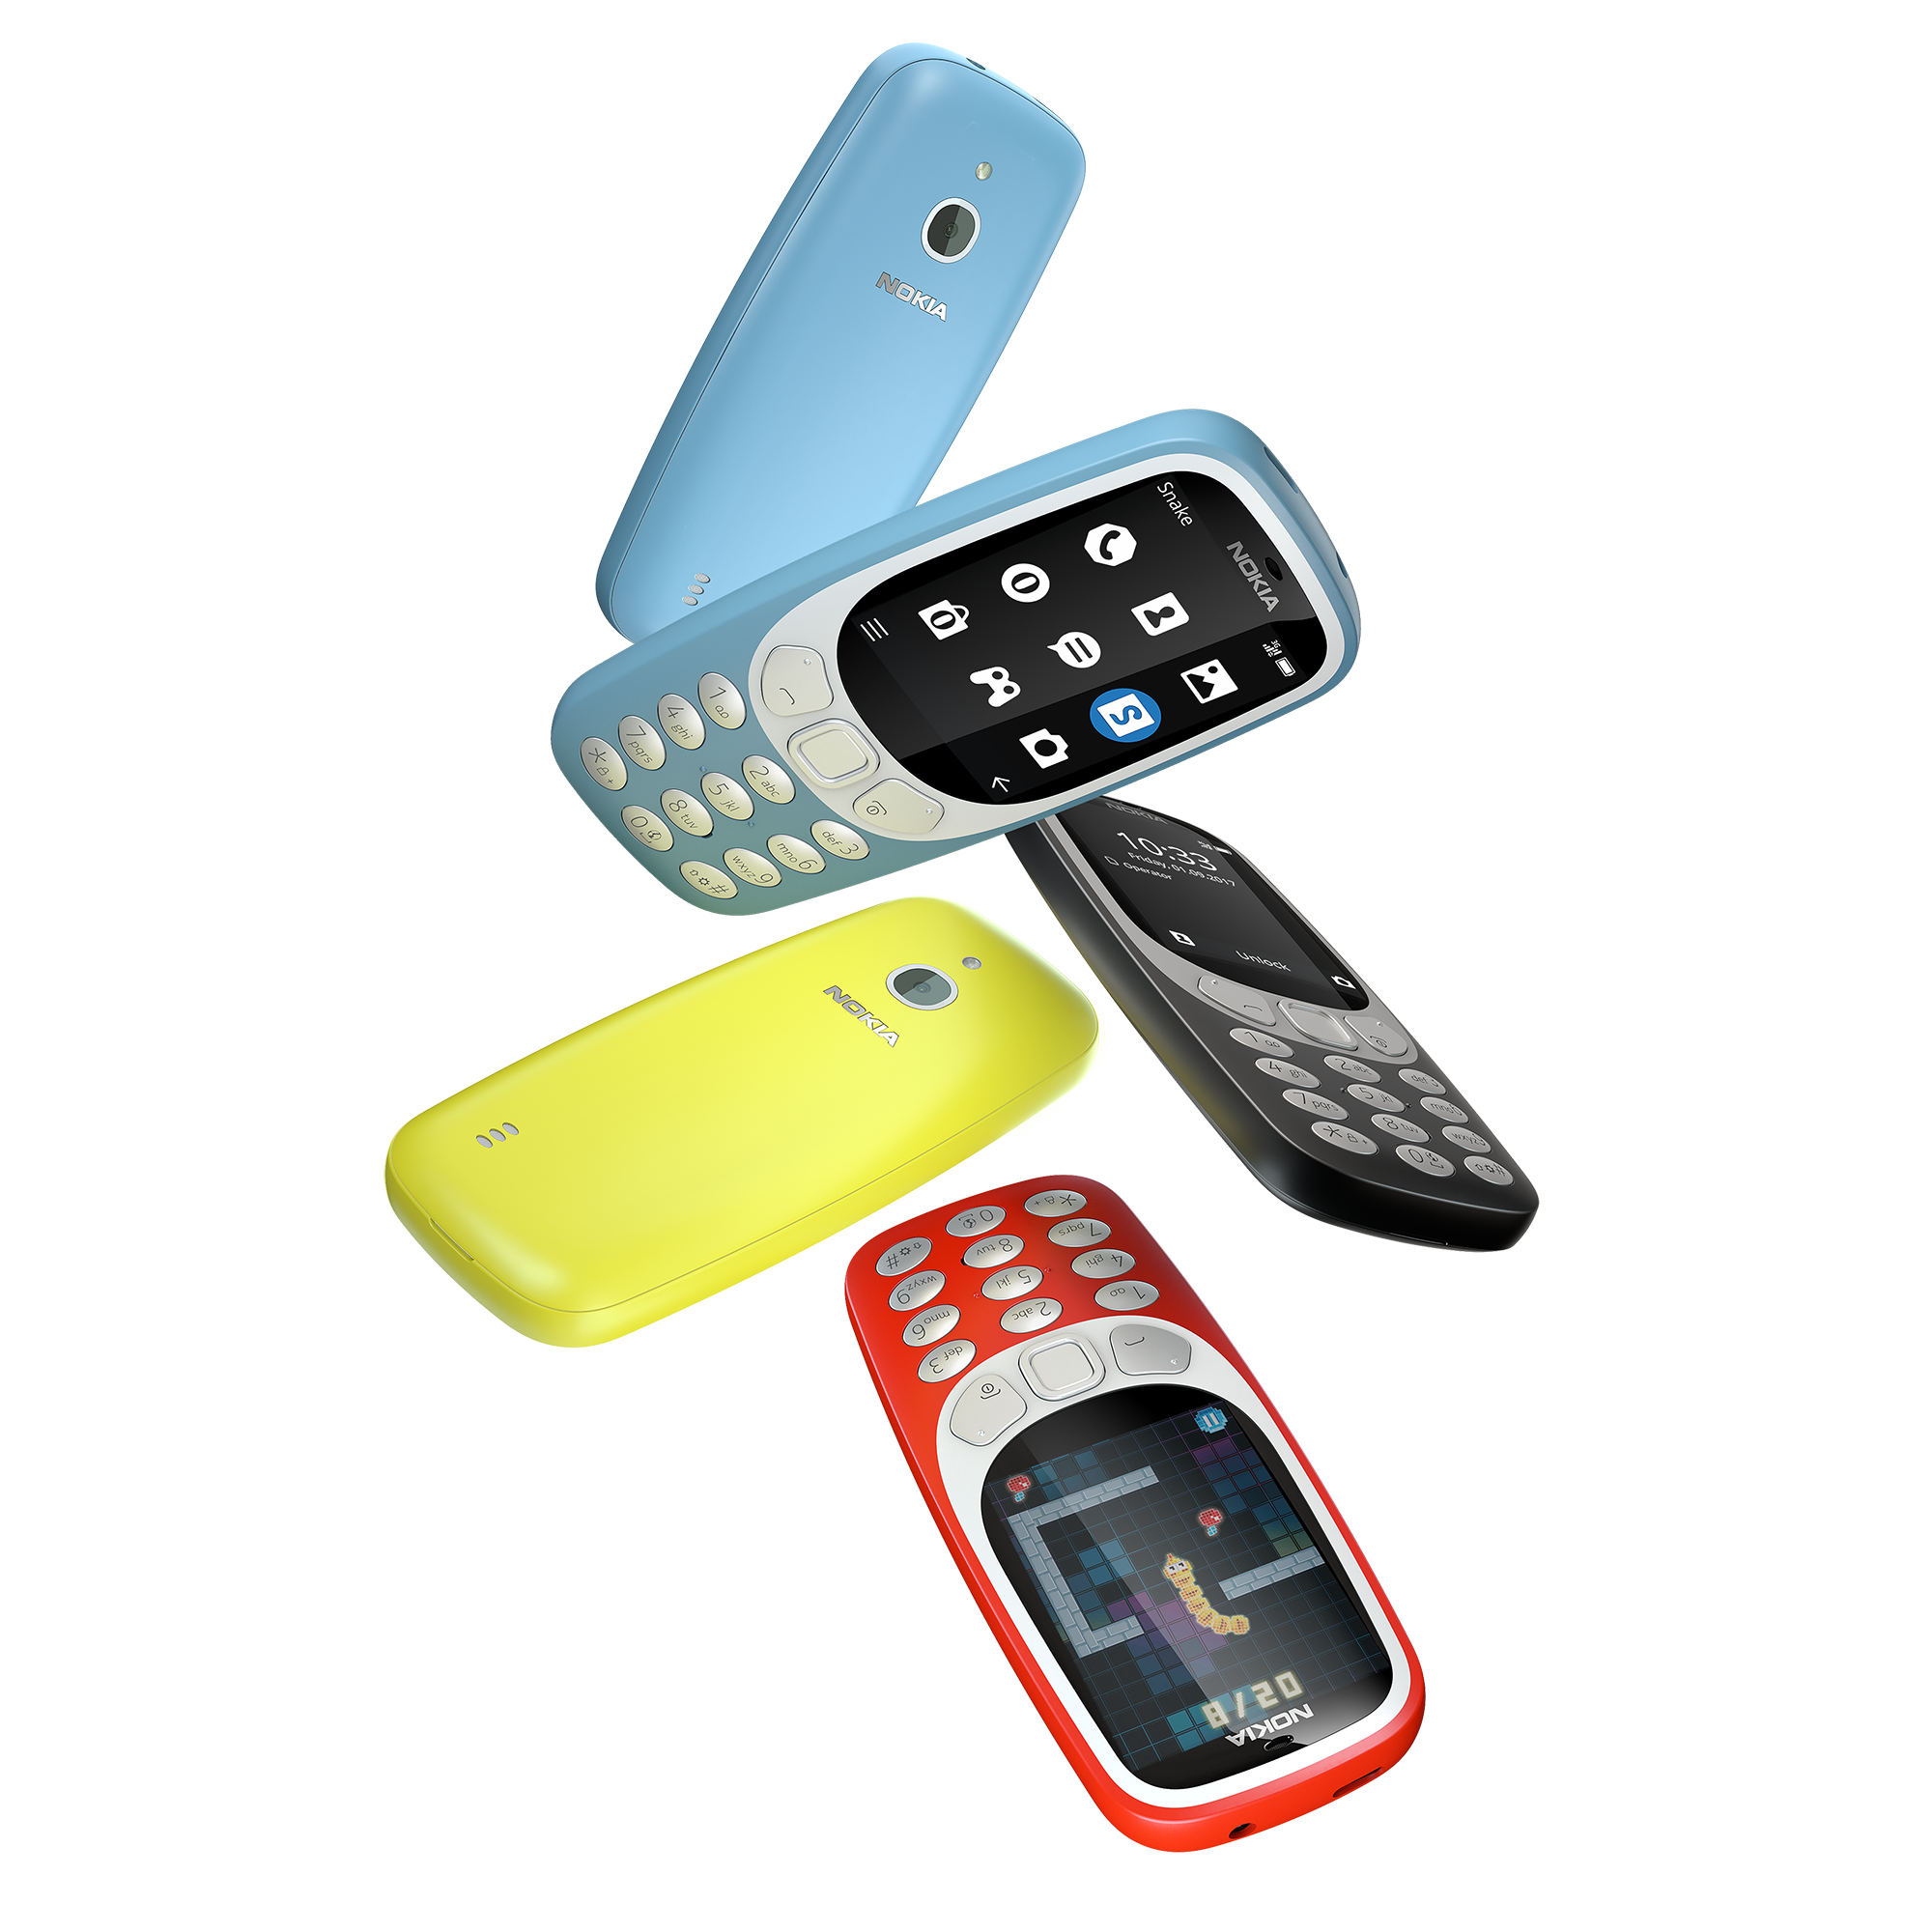 Nokia 3310 3G - Nokia 3310 with 3G Now Available in PH: Priced at PhP2,790